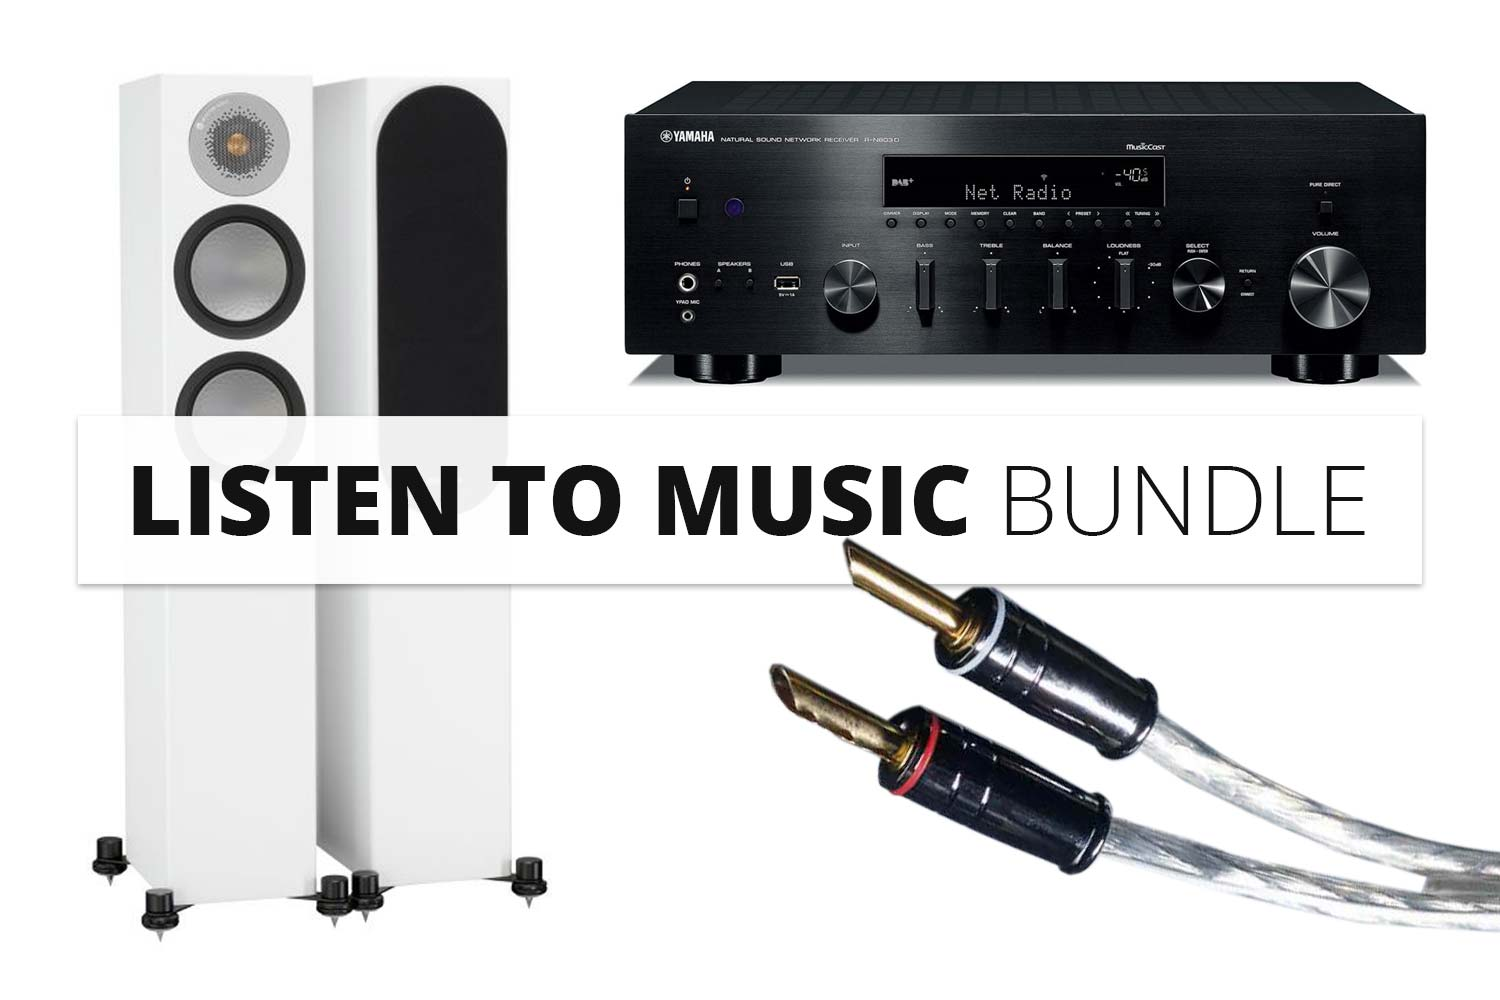 LISTEN TO MUSIC BUNDLE BEI HEIMKINORAUM